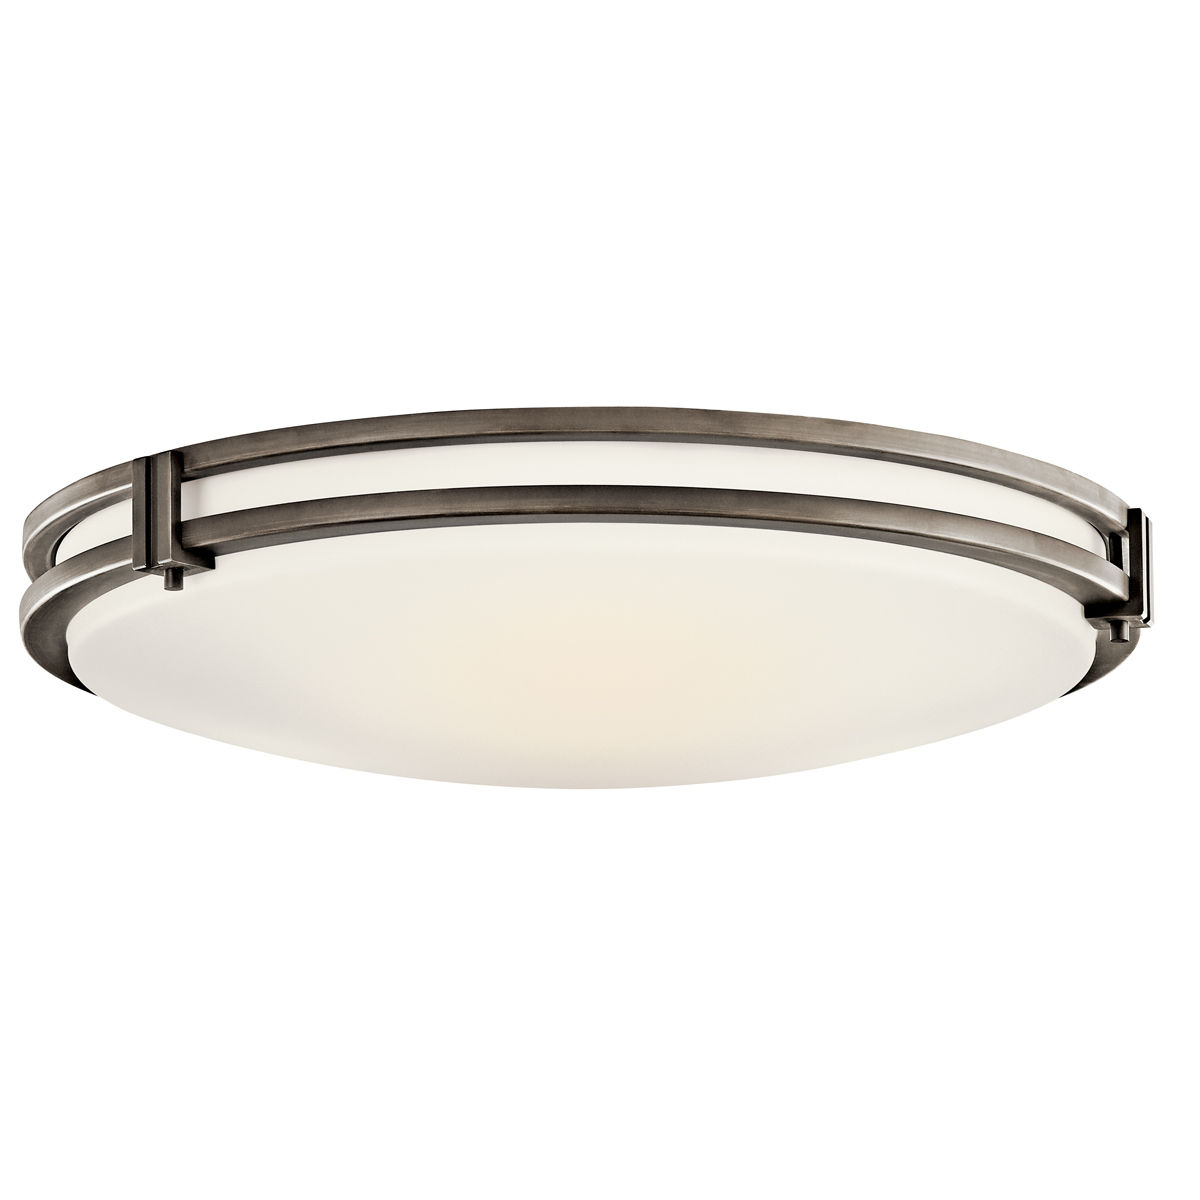 square dimmable hampton bay bright in ceiling light led flushmount mount nickel p fixture flush lights white brushed